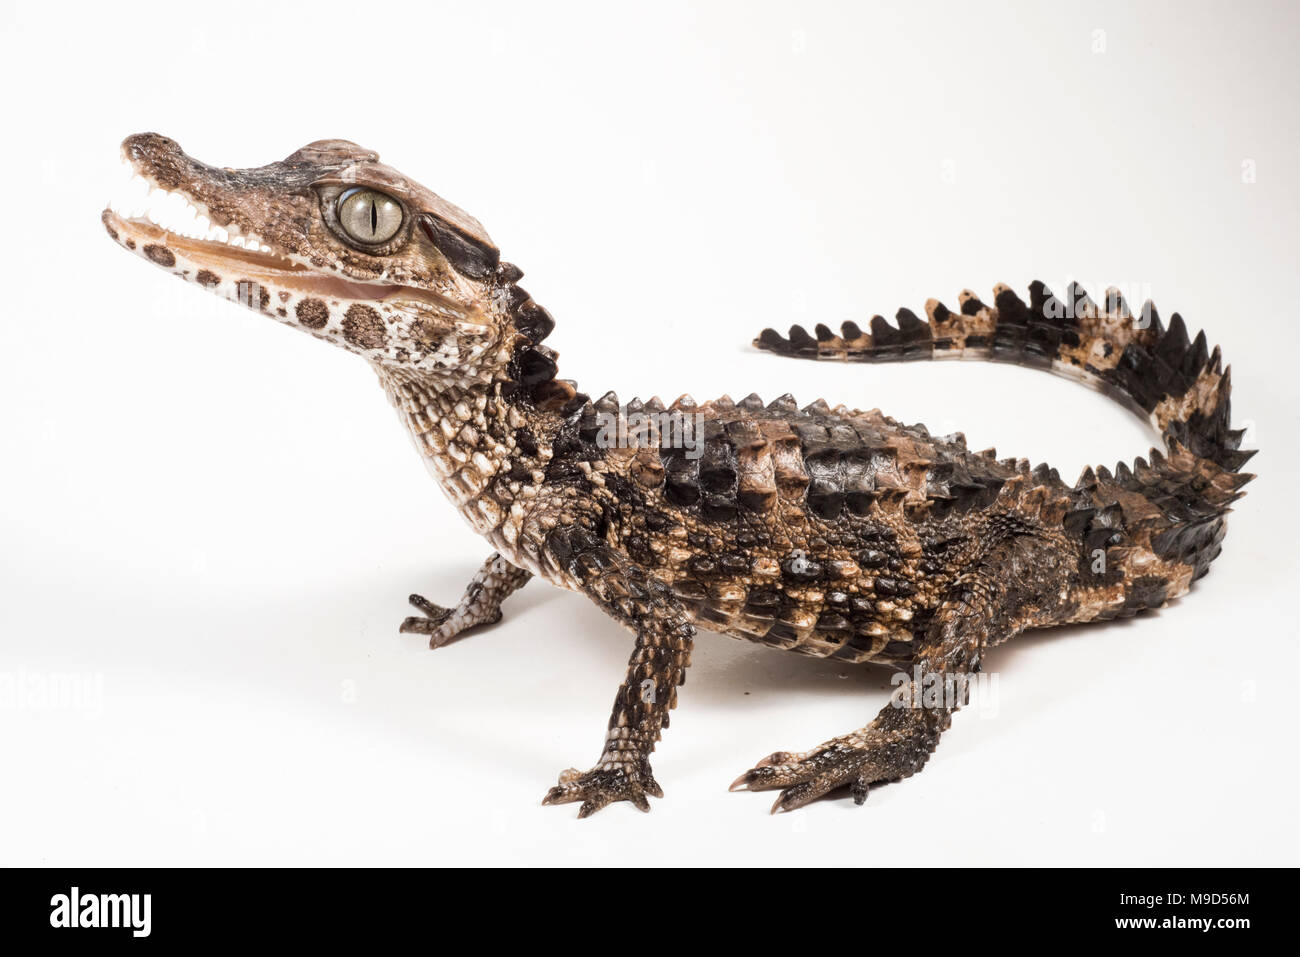 bd67a9ae6 Crocodilian Species Stock Photos   Crocodilian Species Stock Images ...